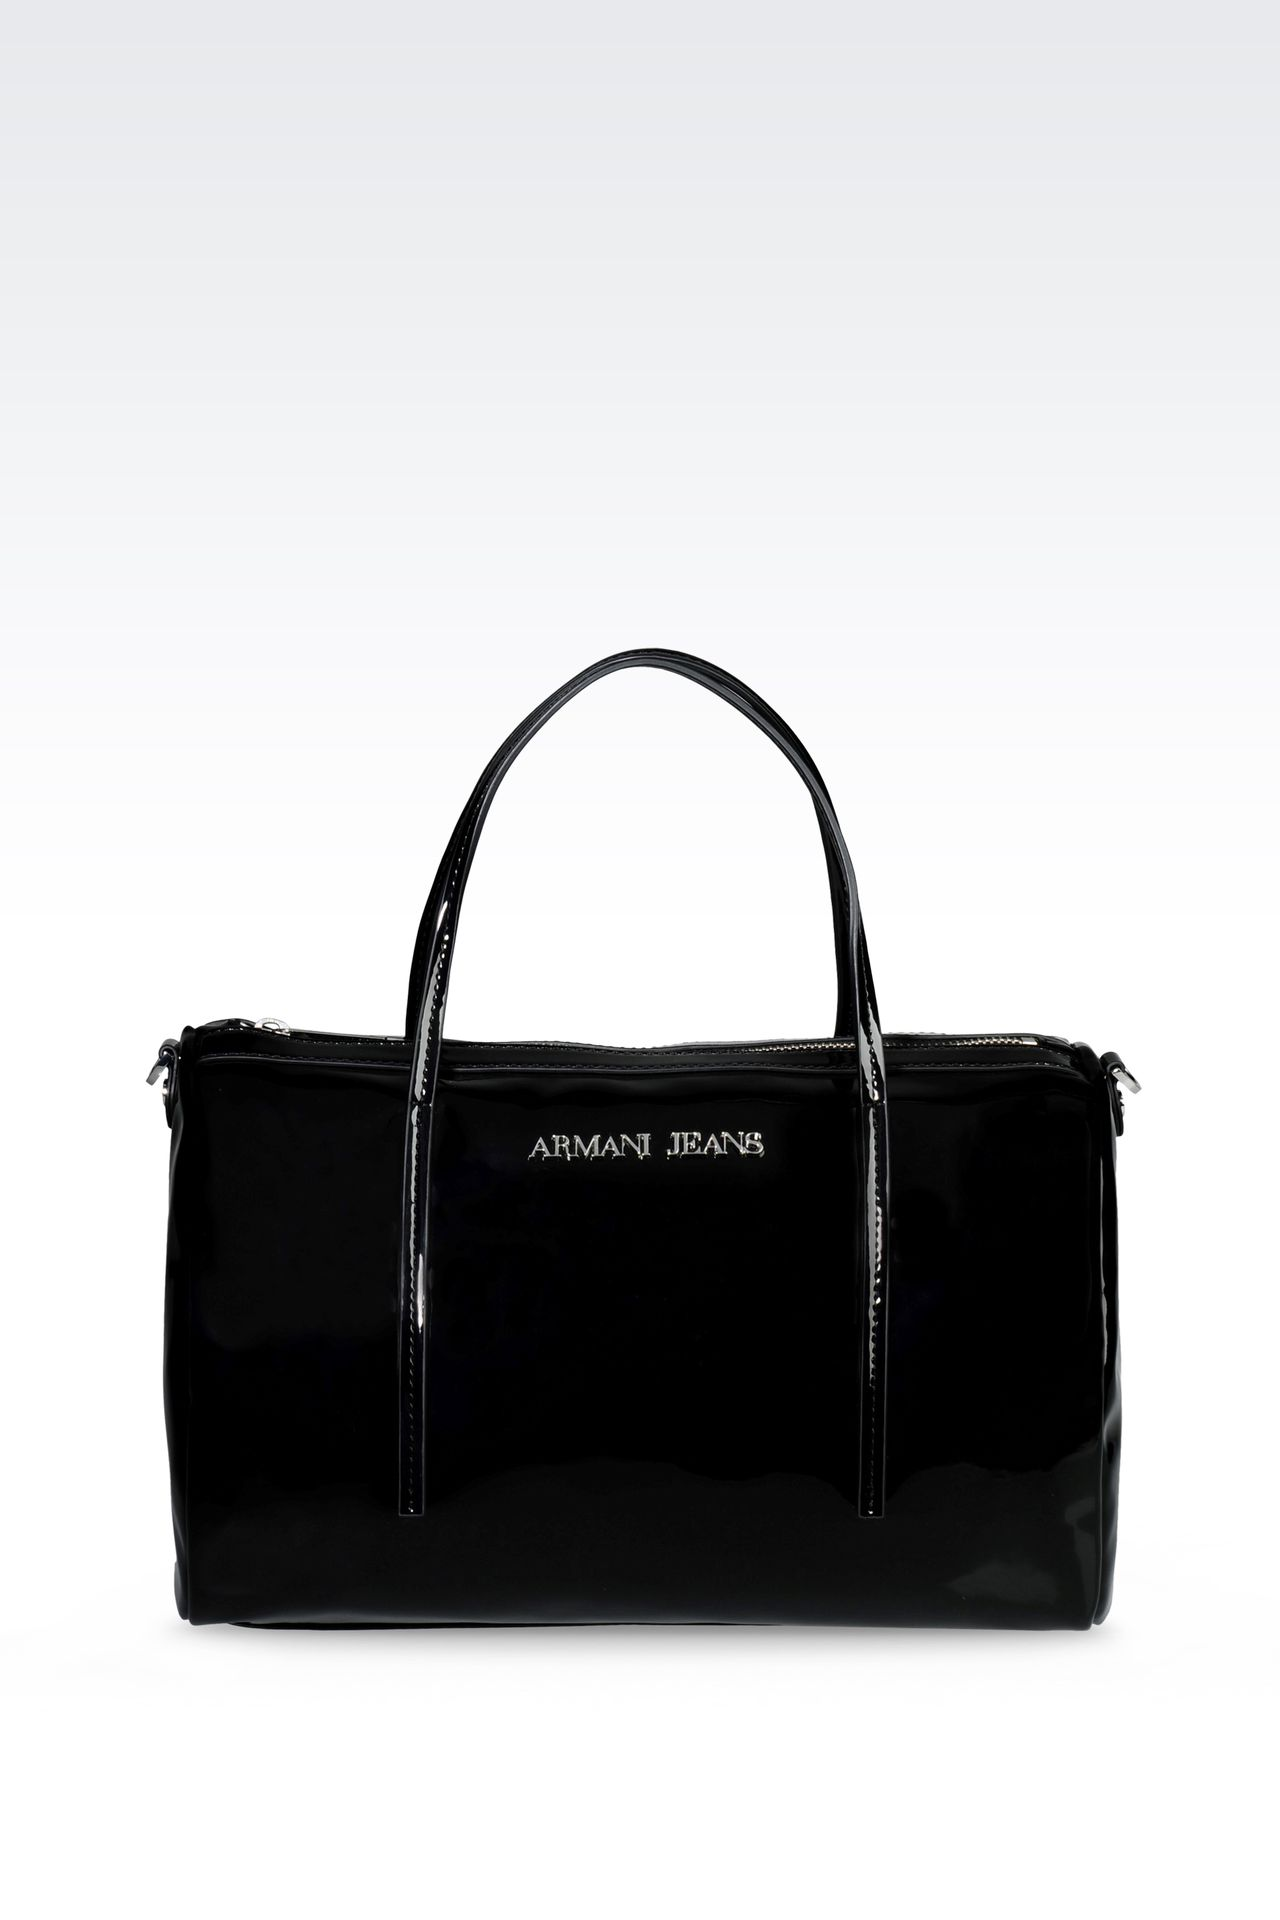 BAULETTO BAG IN PATENT-EFFECT FAUX LEATHER: Baulettos Women by Armani - 0